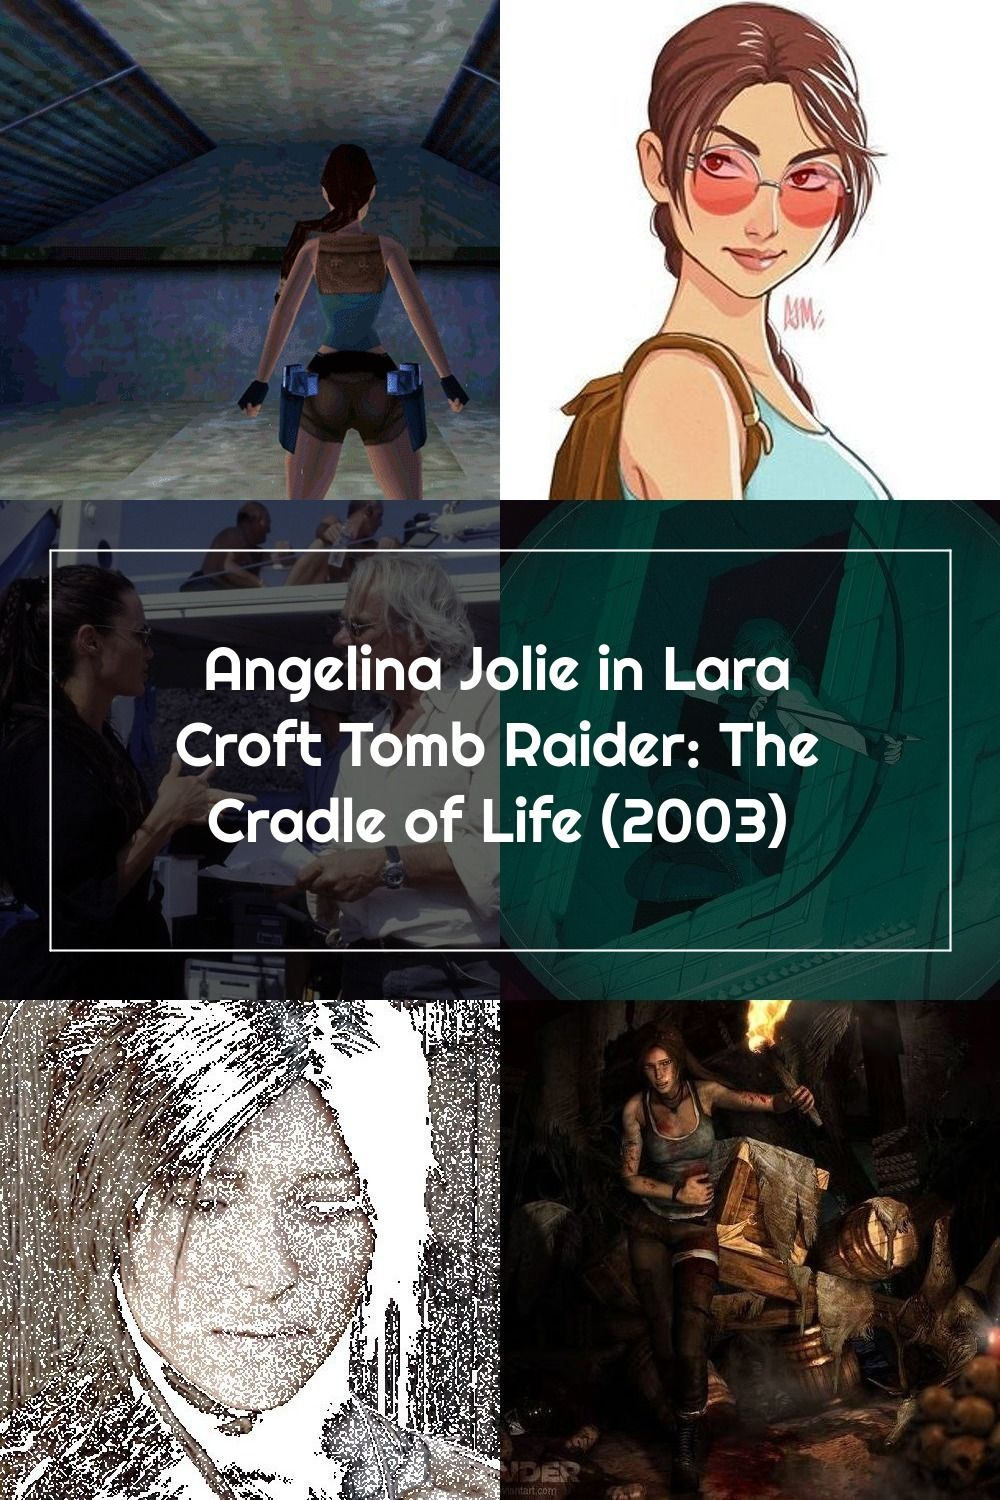 Angelina Jolie In Lara Croft Tomb Raider The Cradle Of Life 2003 In 2020 Lara Croft Tomb Lara Croft Tomb Raider